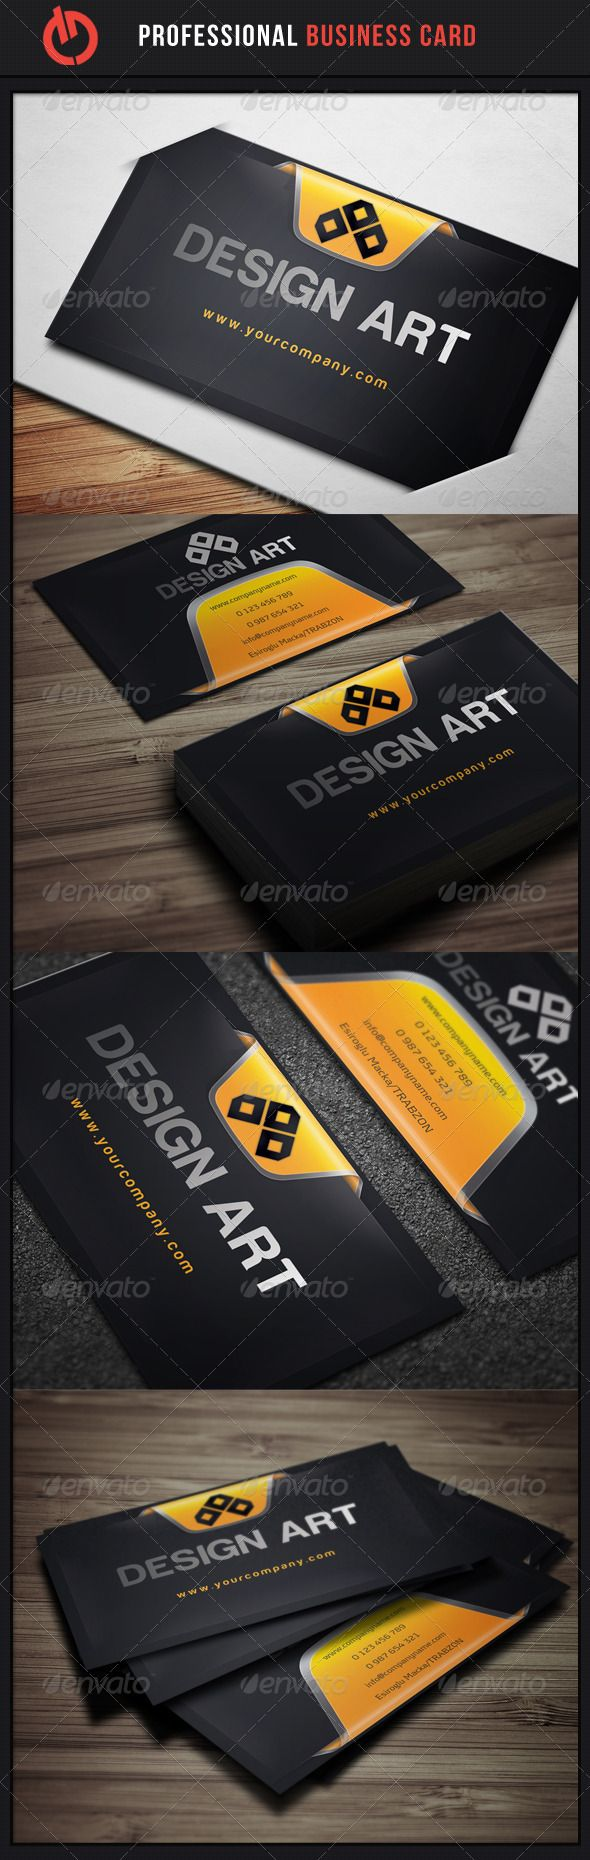 90 best Print Templates images on Pinterest | Fonts, Cards and ...